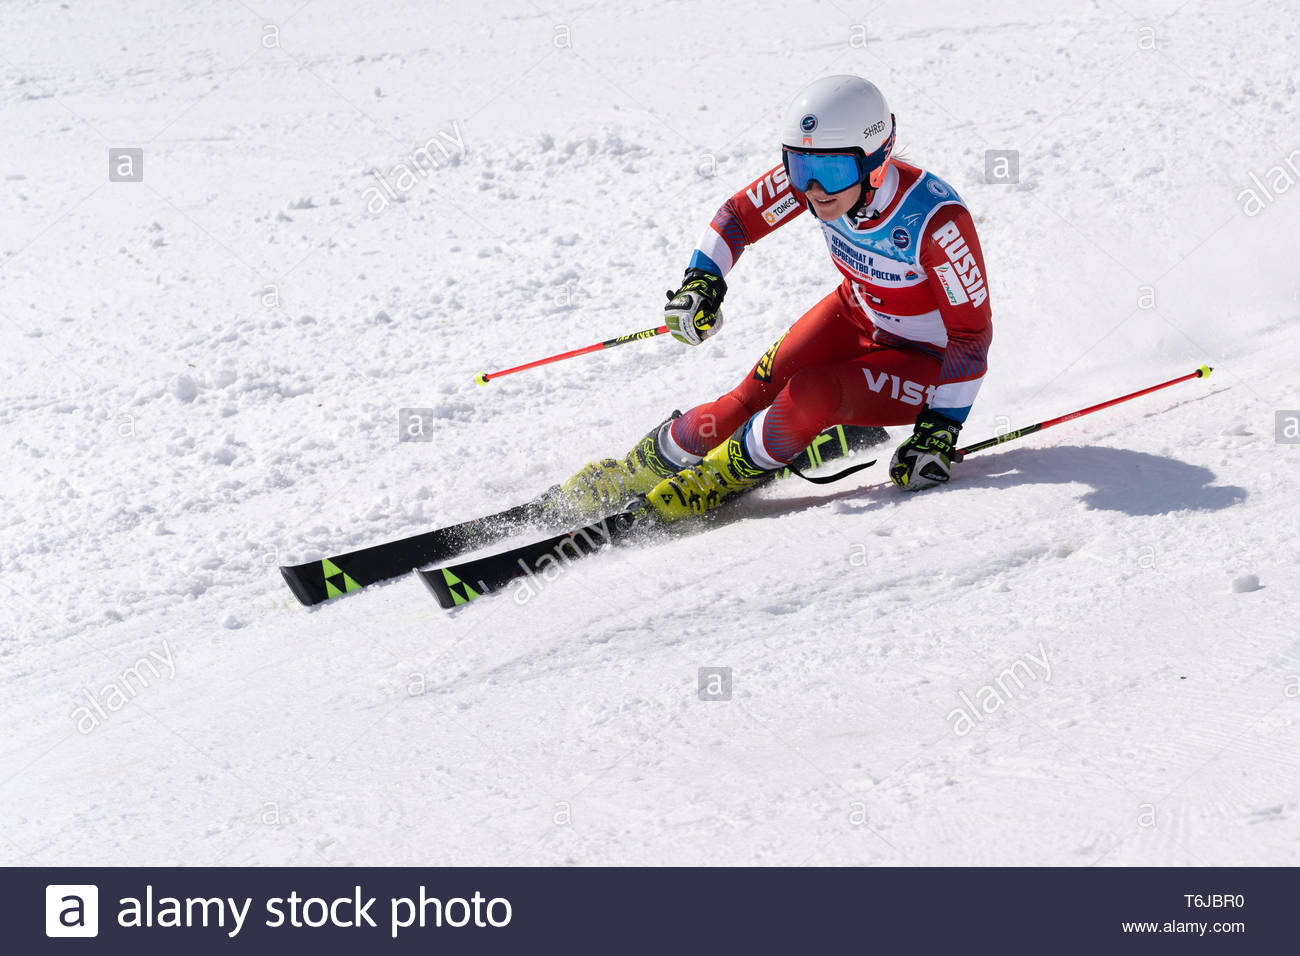 KAMCHATKA PENINSULA, RUSSIAN FEDERATION - APR 1, 2019: Russian Women's Alpine Skiing Championship, giant slalom. Mountain skier Rinata Abdulkayumova ( - Stock Image